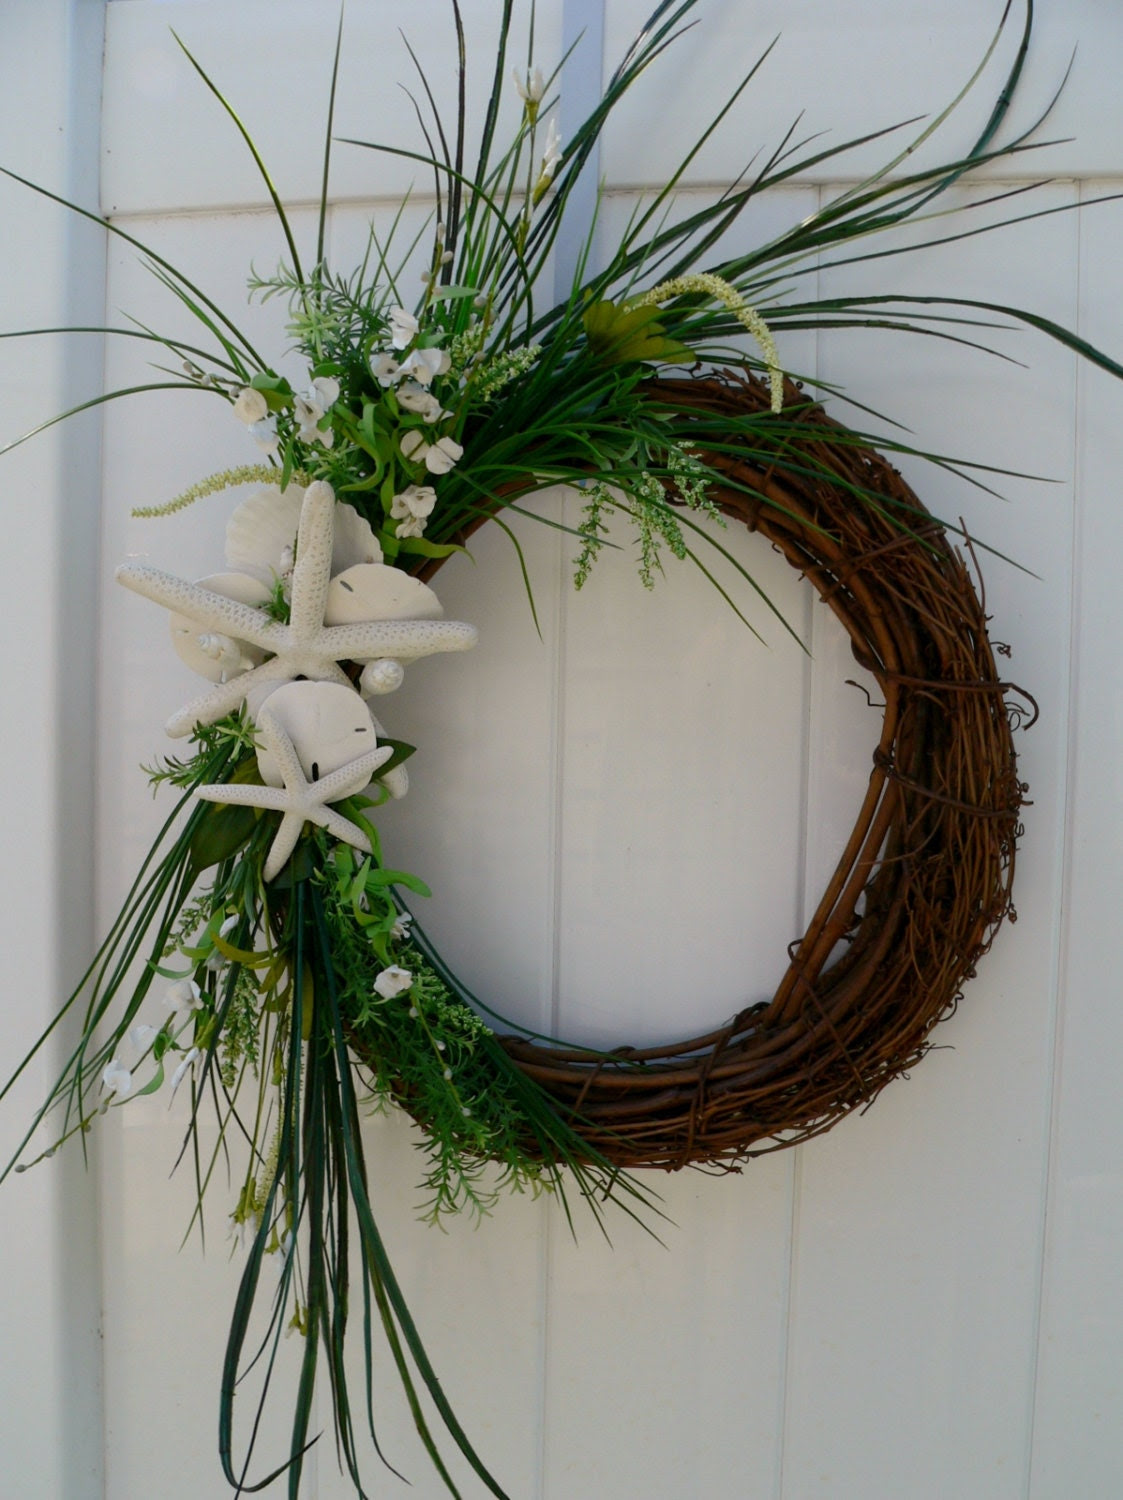 Beachy Wreath Coastal Style at it's Best by BeachyWreaths on Etsy